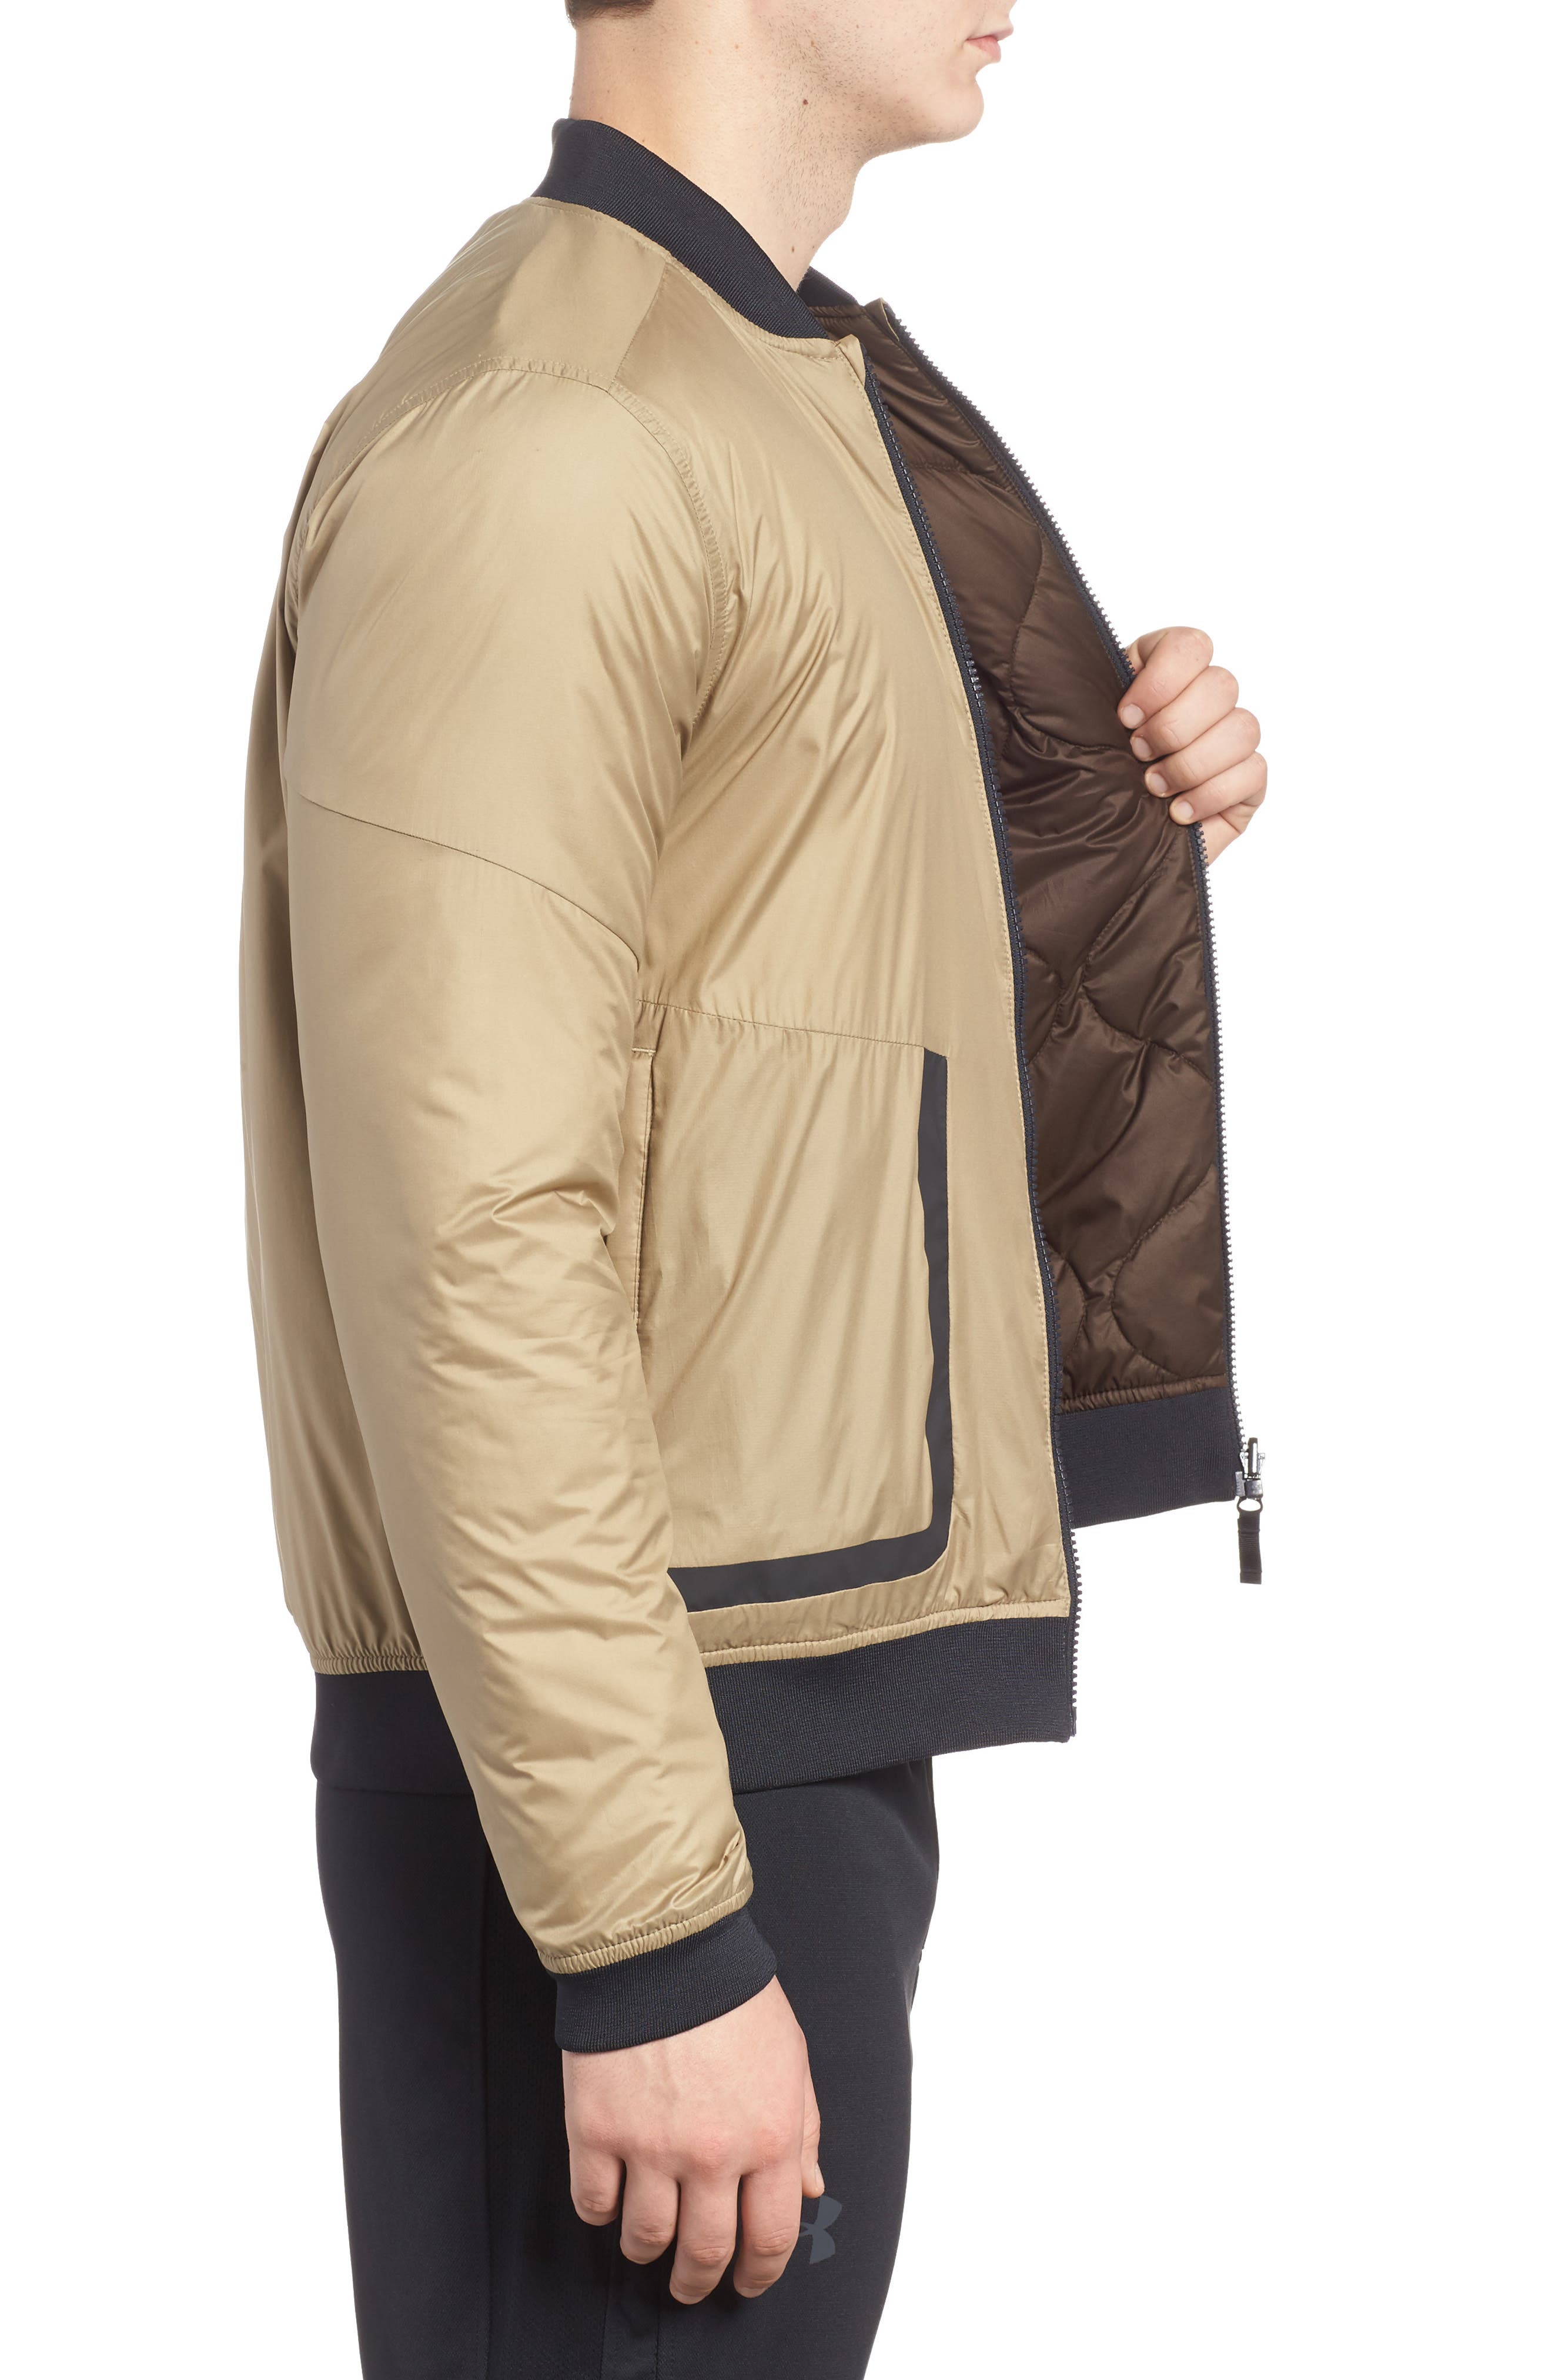 Sportstyle Reactor Reversible Bomber Jacket,                             Alternate thumbnail 3, color,                             Canvas / Bay Brown / Black